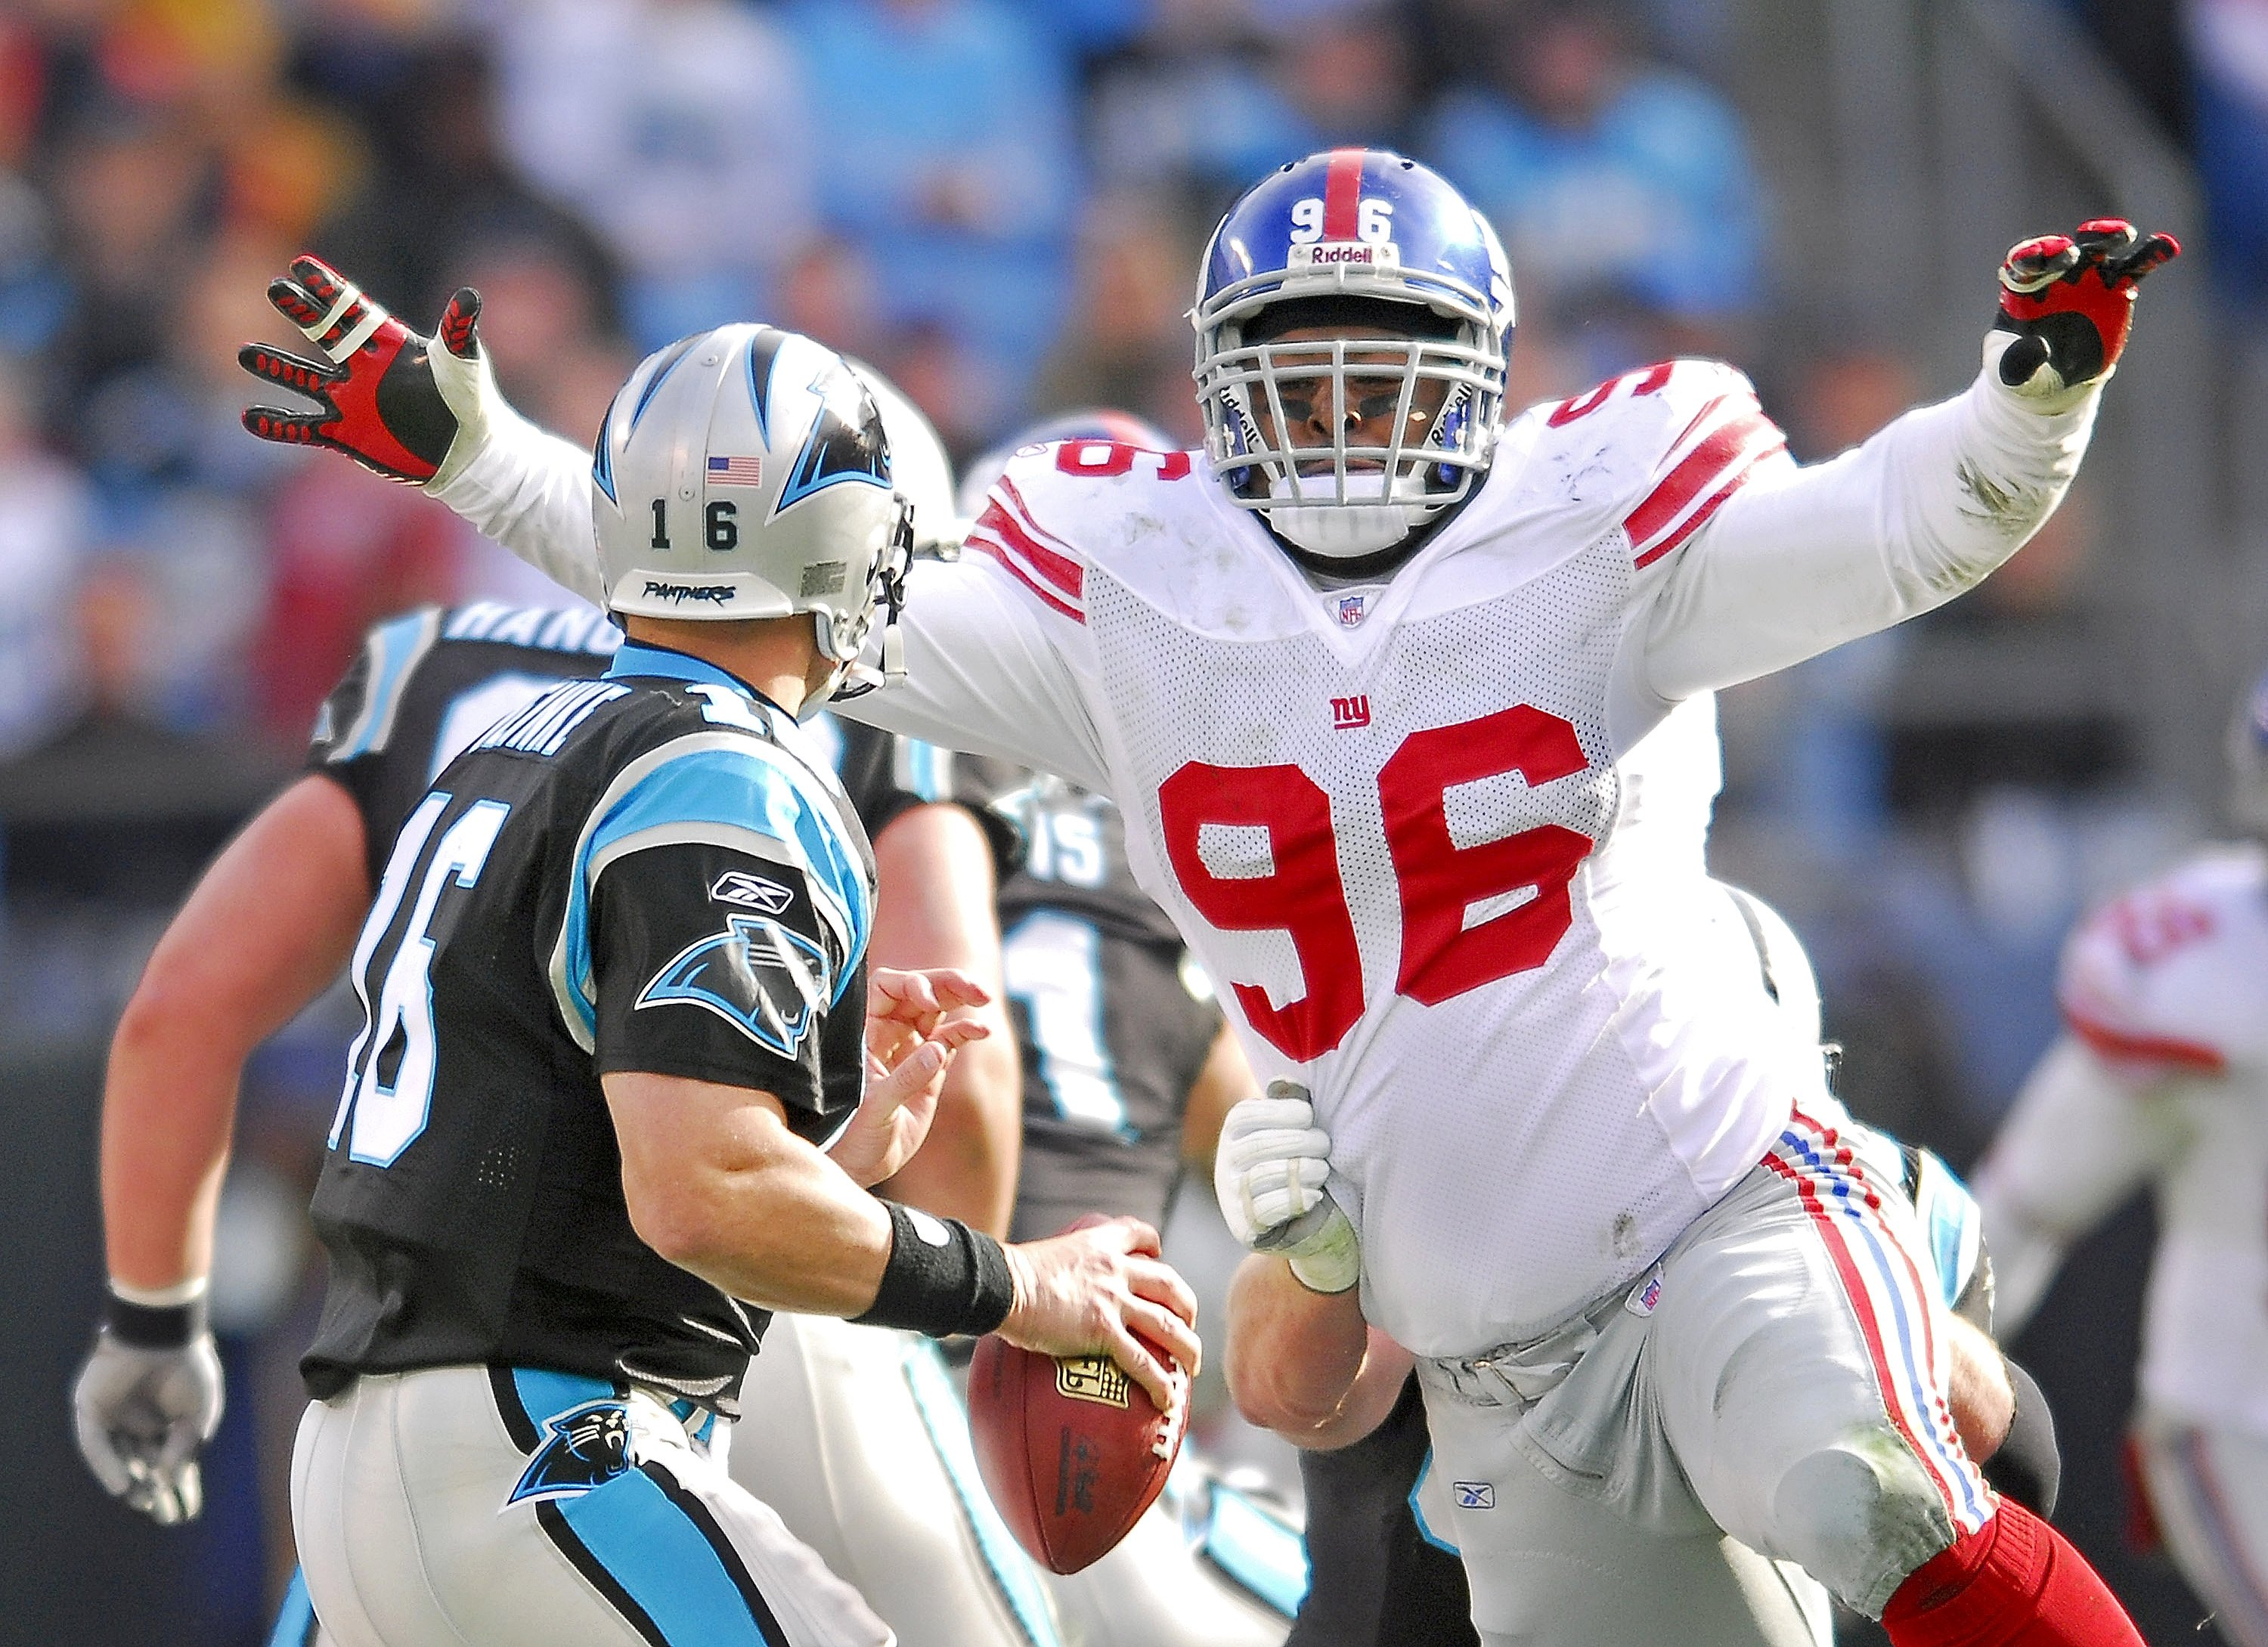 CHARLOTTE, NC - DECEMBER 10: Barry Cofield #96 of the New York Giants pressures quarterback Chris Weinke #16 of the Carolina Panthers during an NFL game on December 10, 2006, at Bank of America Stadium in Charlotte, North Carolina. (Photo By Grant Halvers